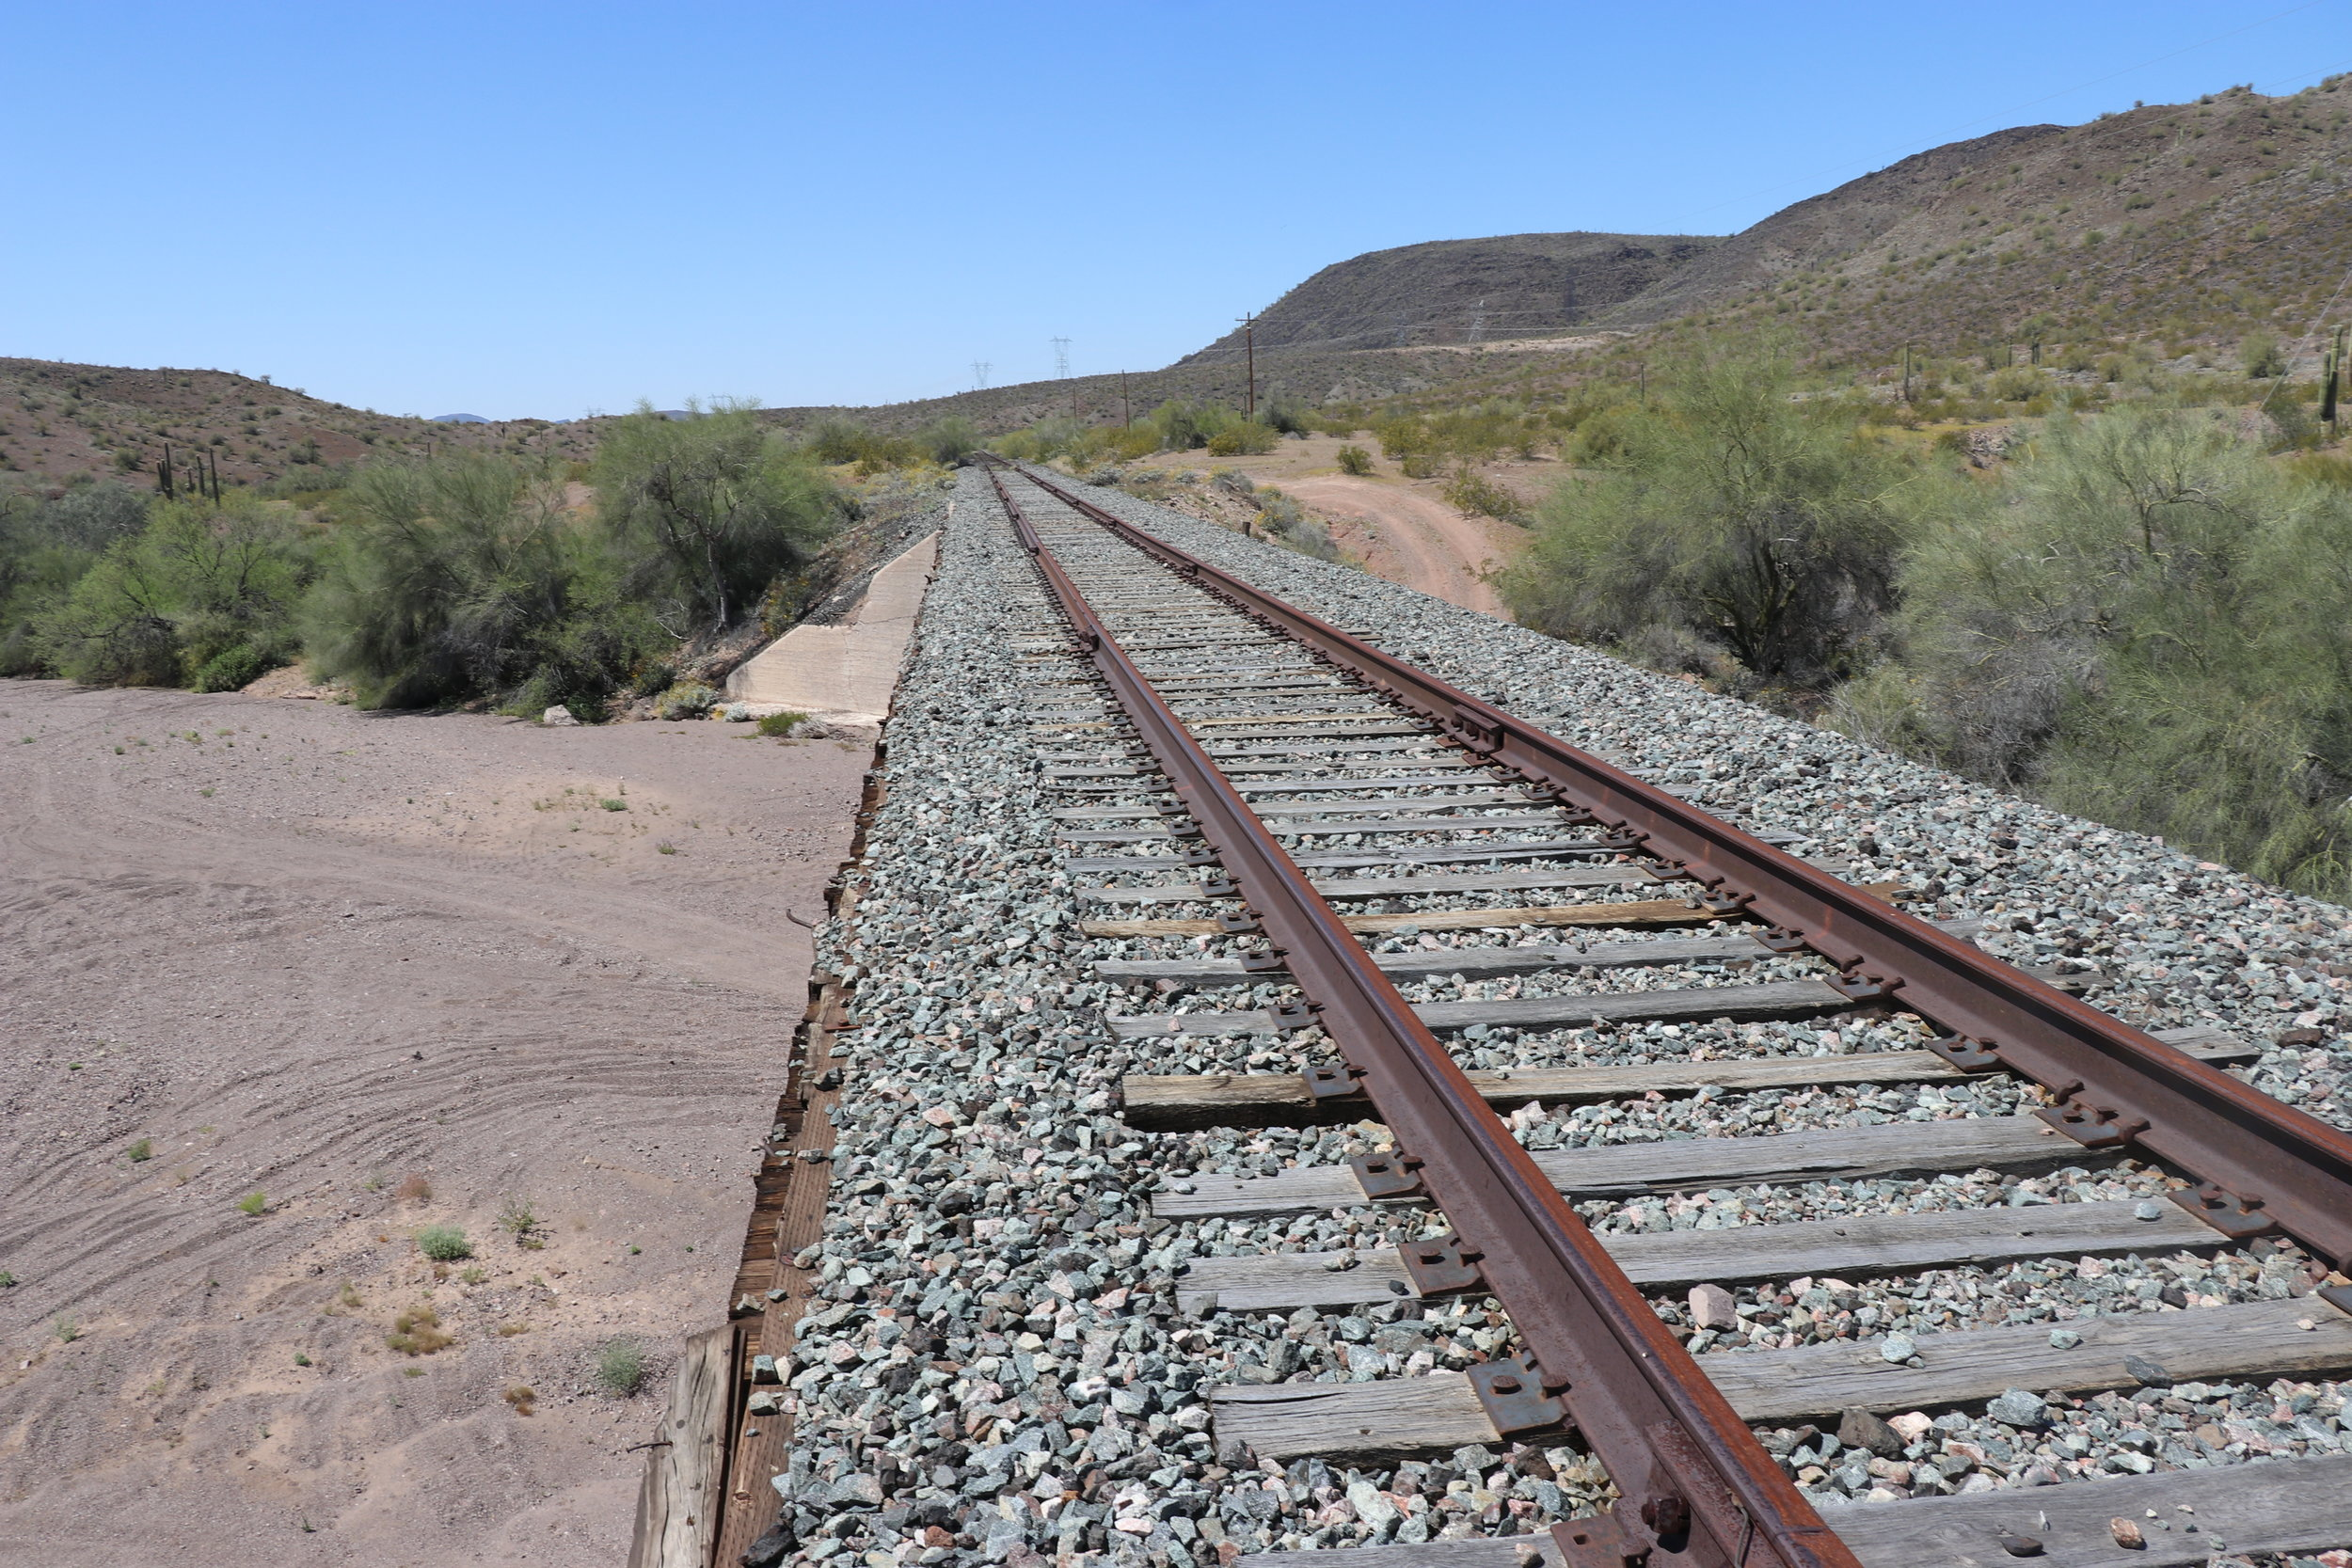 The train derailed off to the left side of the bridge over Quail Springs Wash.